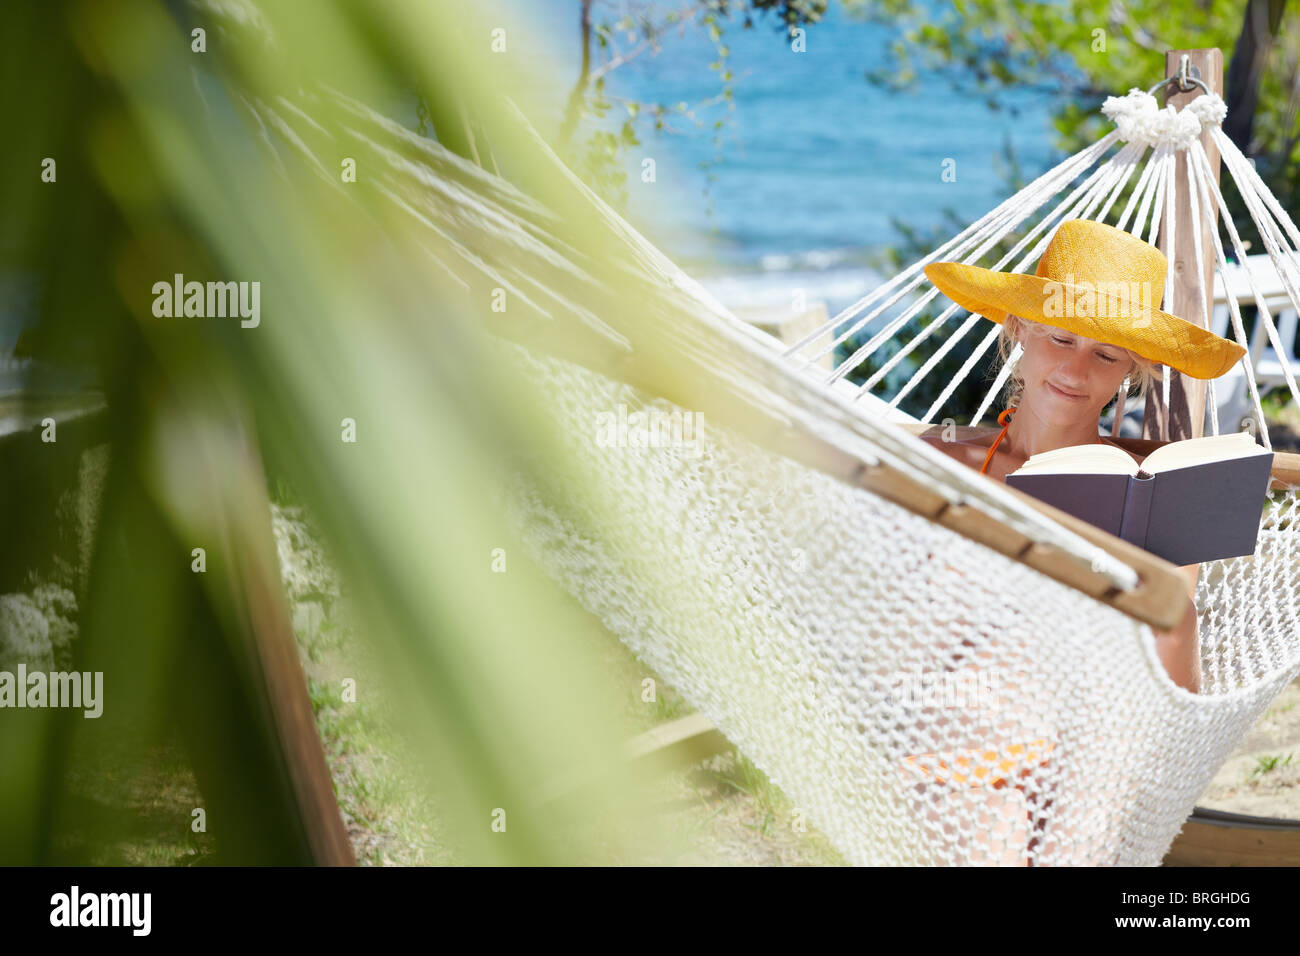 mid adult woman with orange hat reading book on hammock. Front view, Horizontal shape, copy space - Stock Image